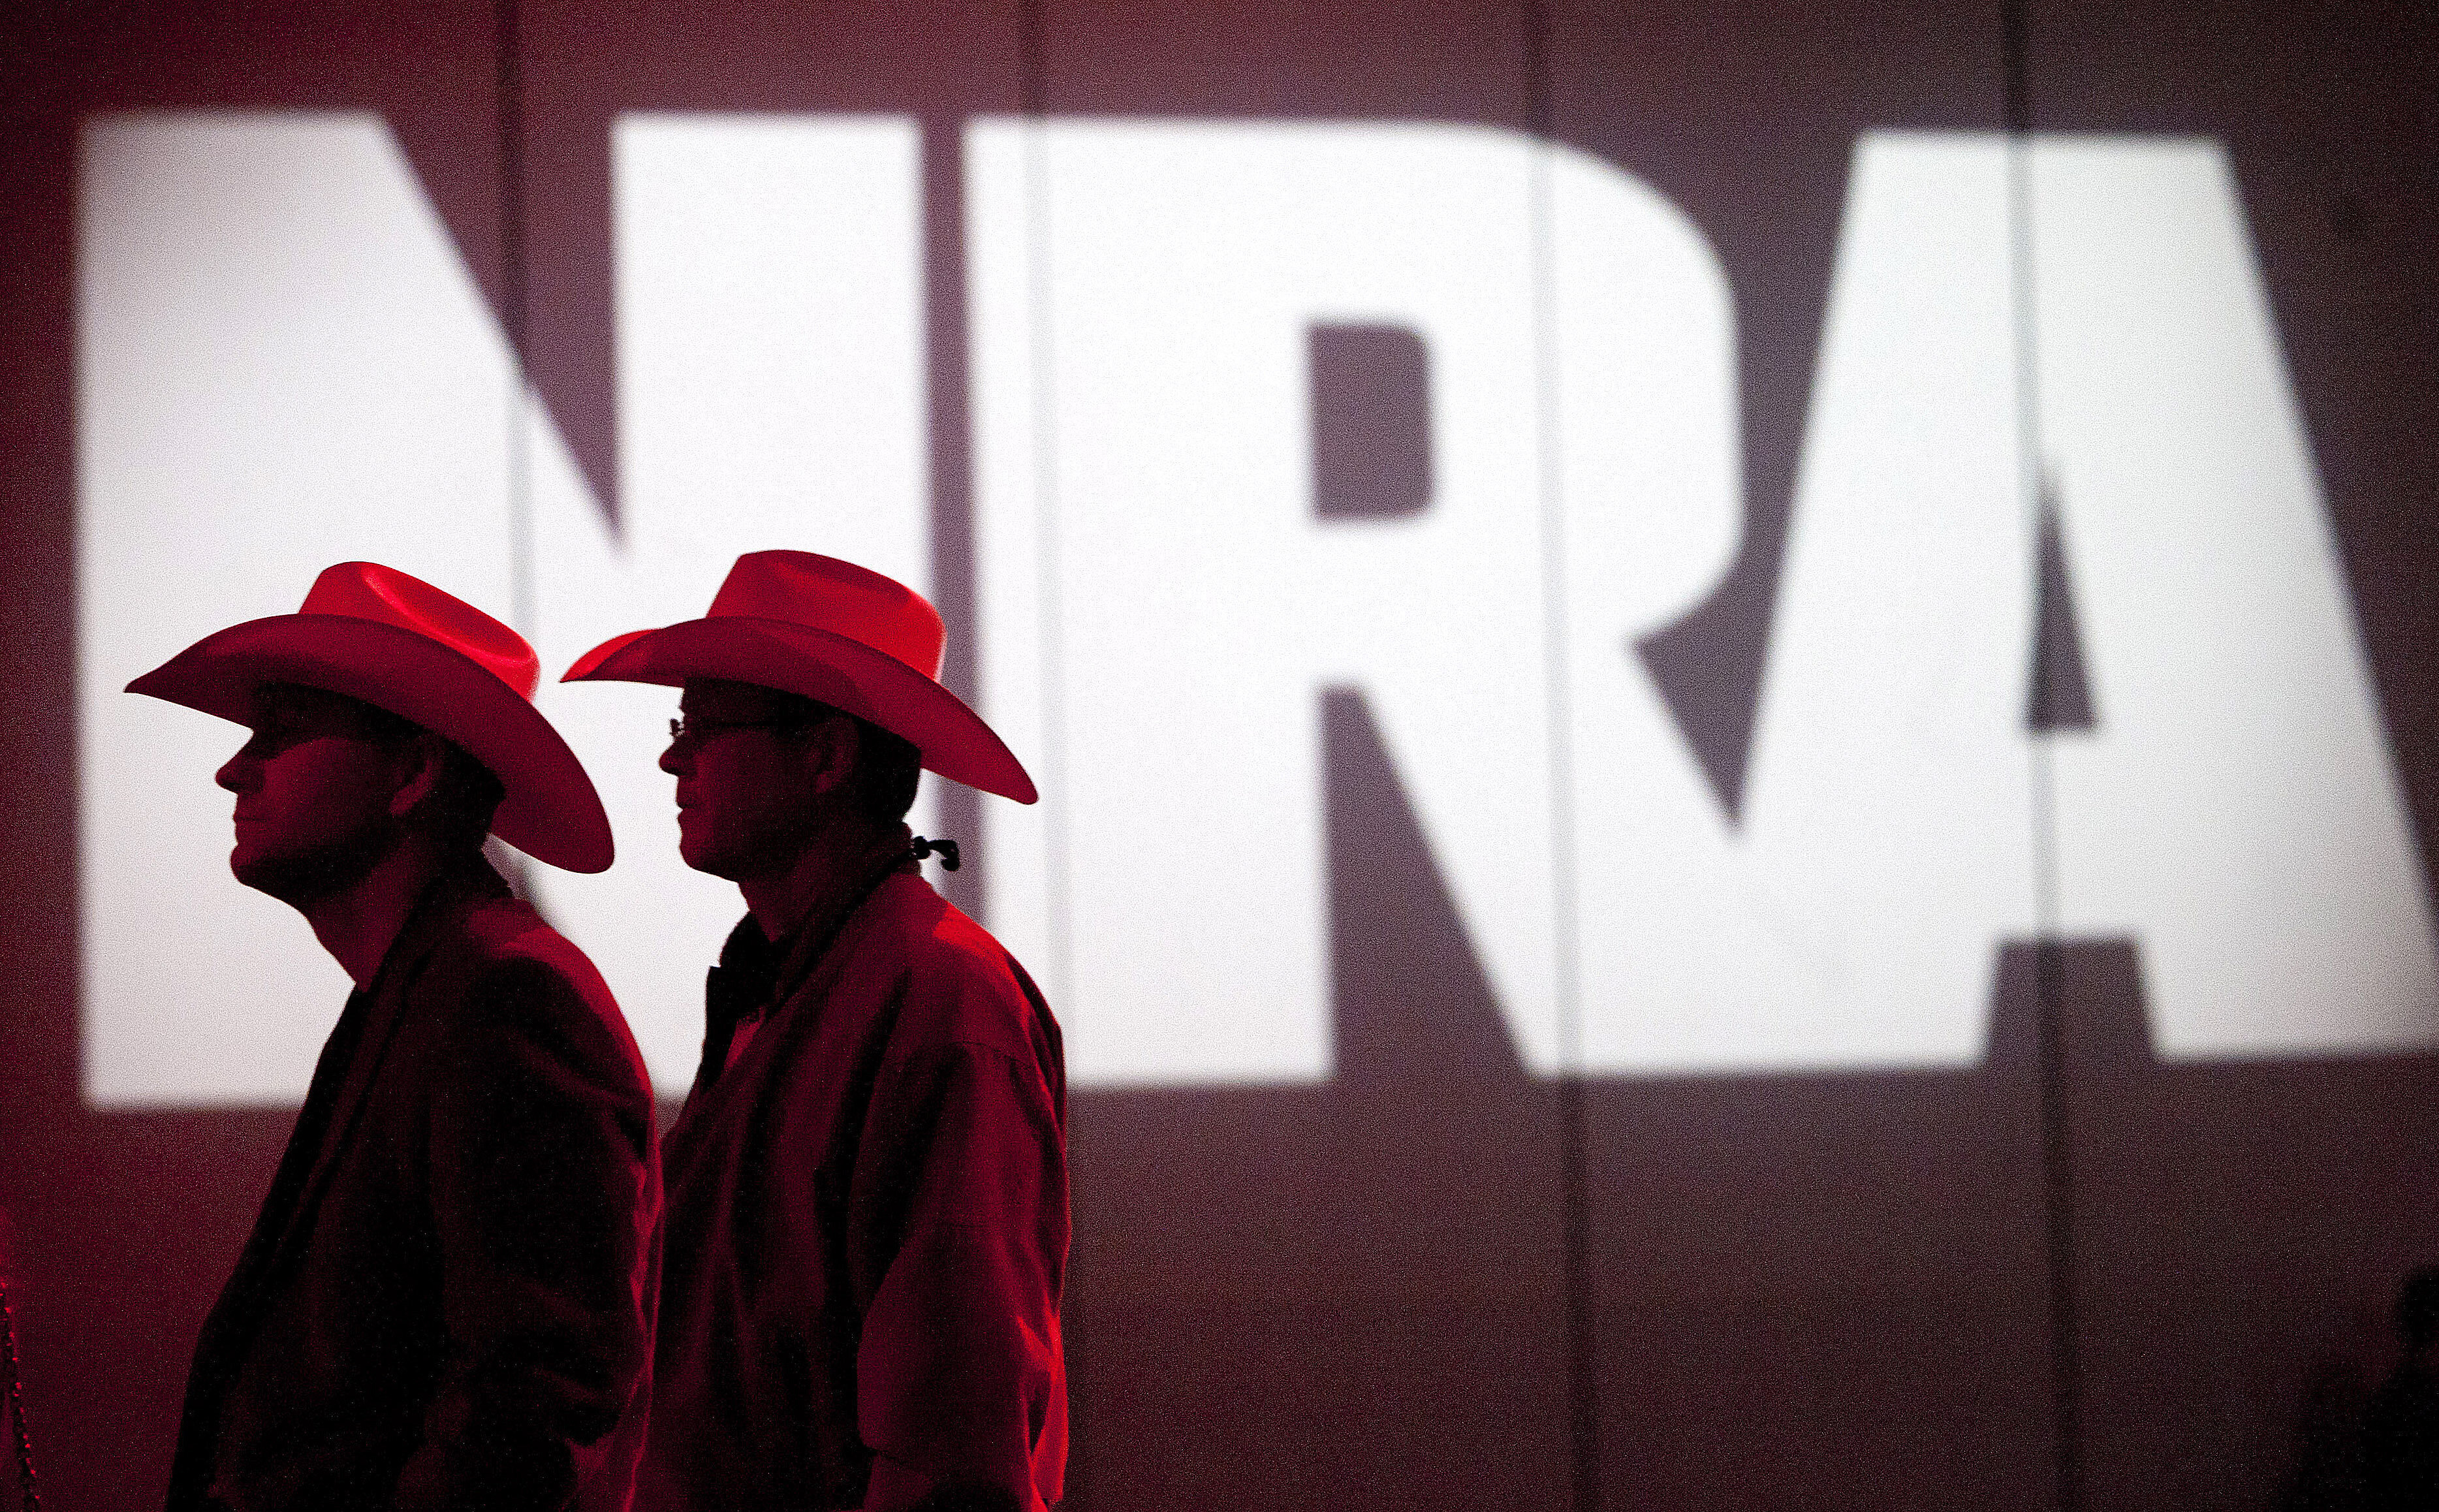 In this 2013 file photo, NRA members listen to speakers during the NRA Annual Meeting in Houston. The National Rifle Associat